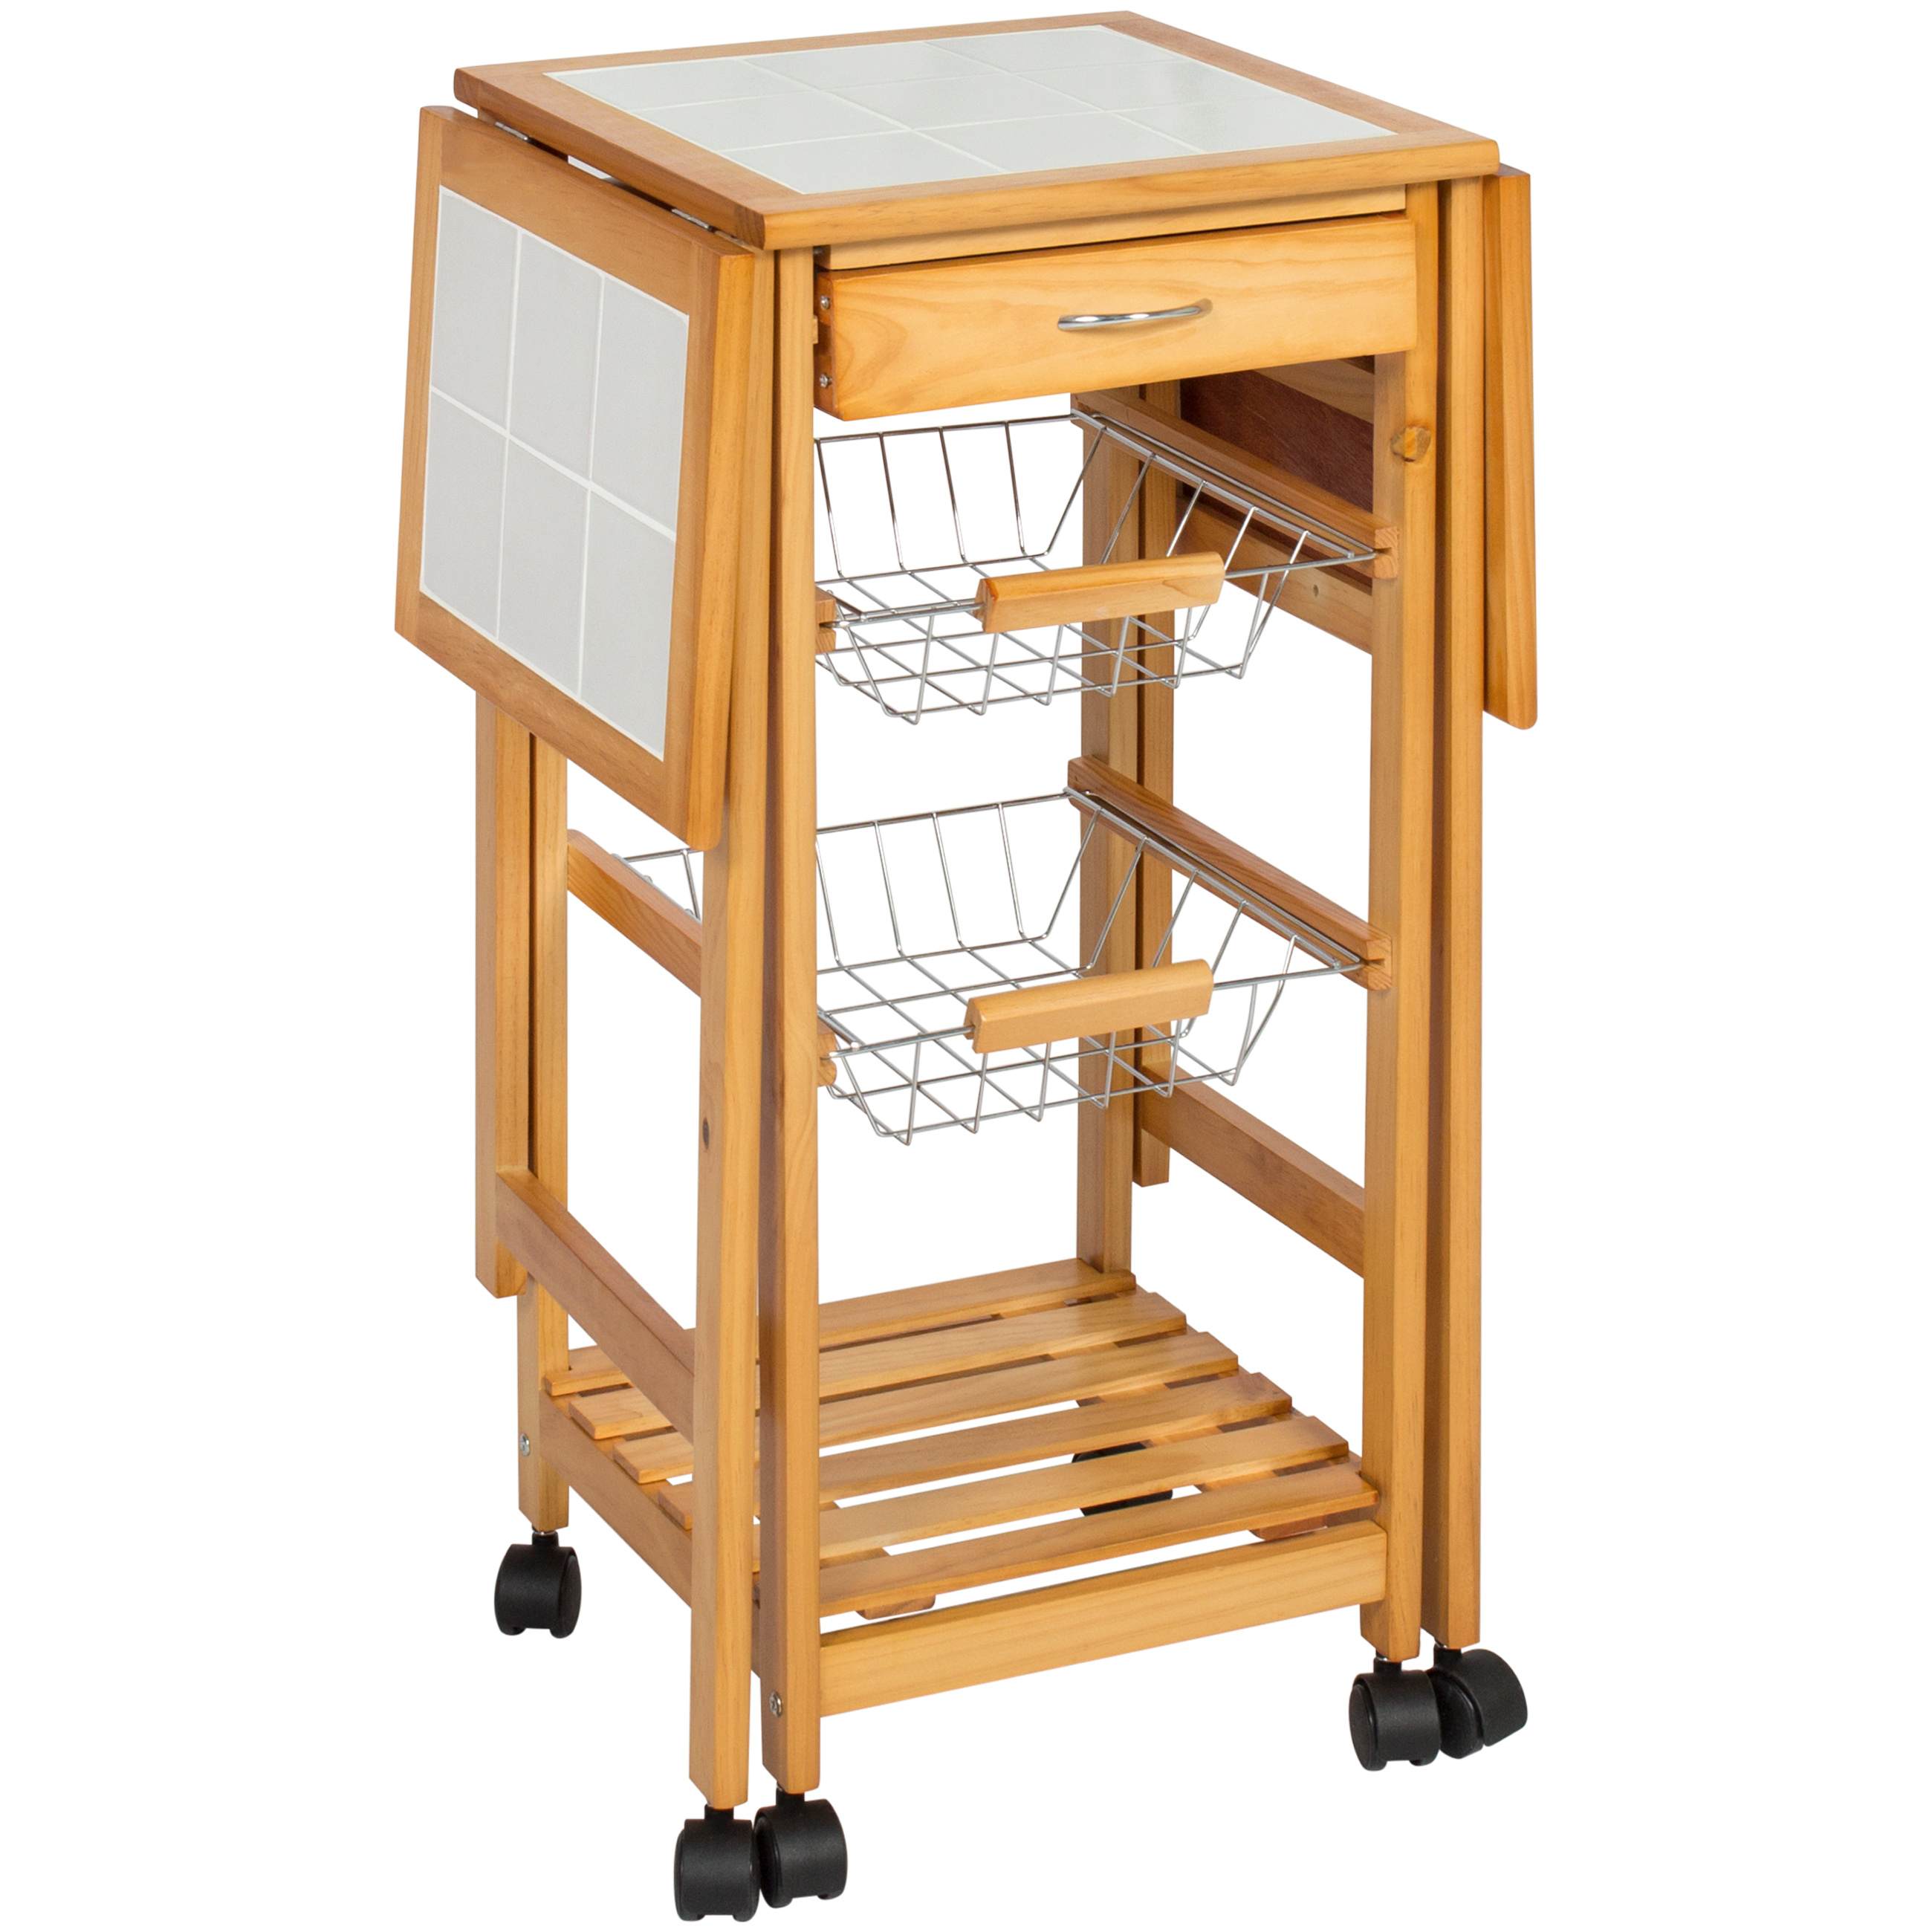 folding kitchen island portable folding tile top drop leaf kitchen island cart table rolling trolley 816586027719 ebay 6023